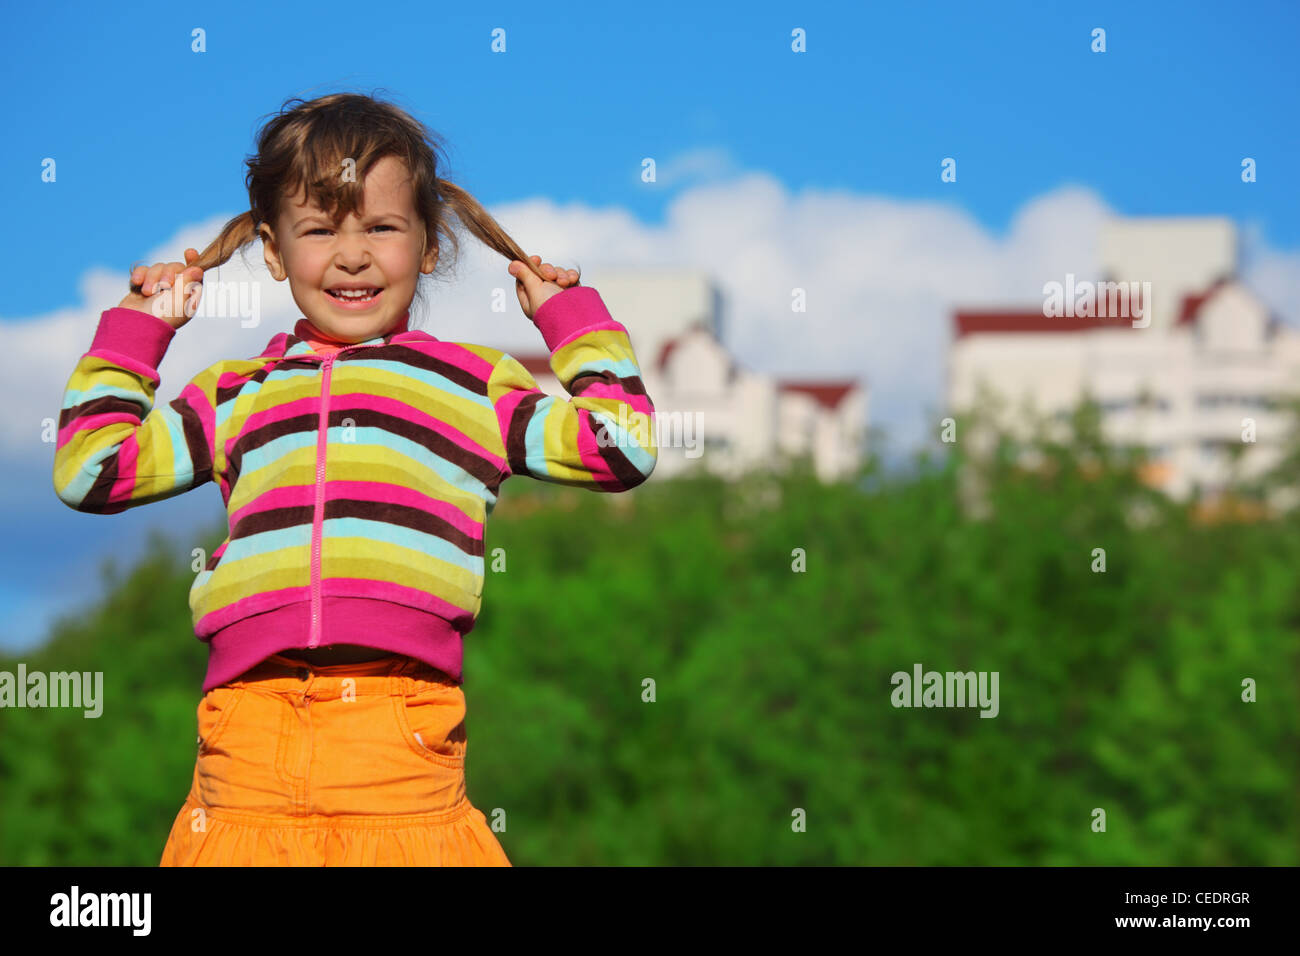 little girl holding plaits in front of trees and buildings - Stock Image